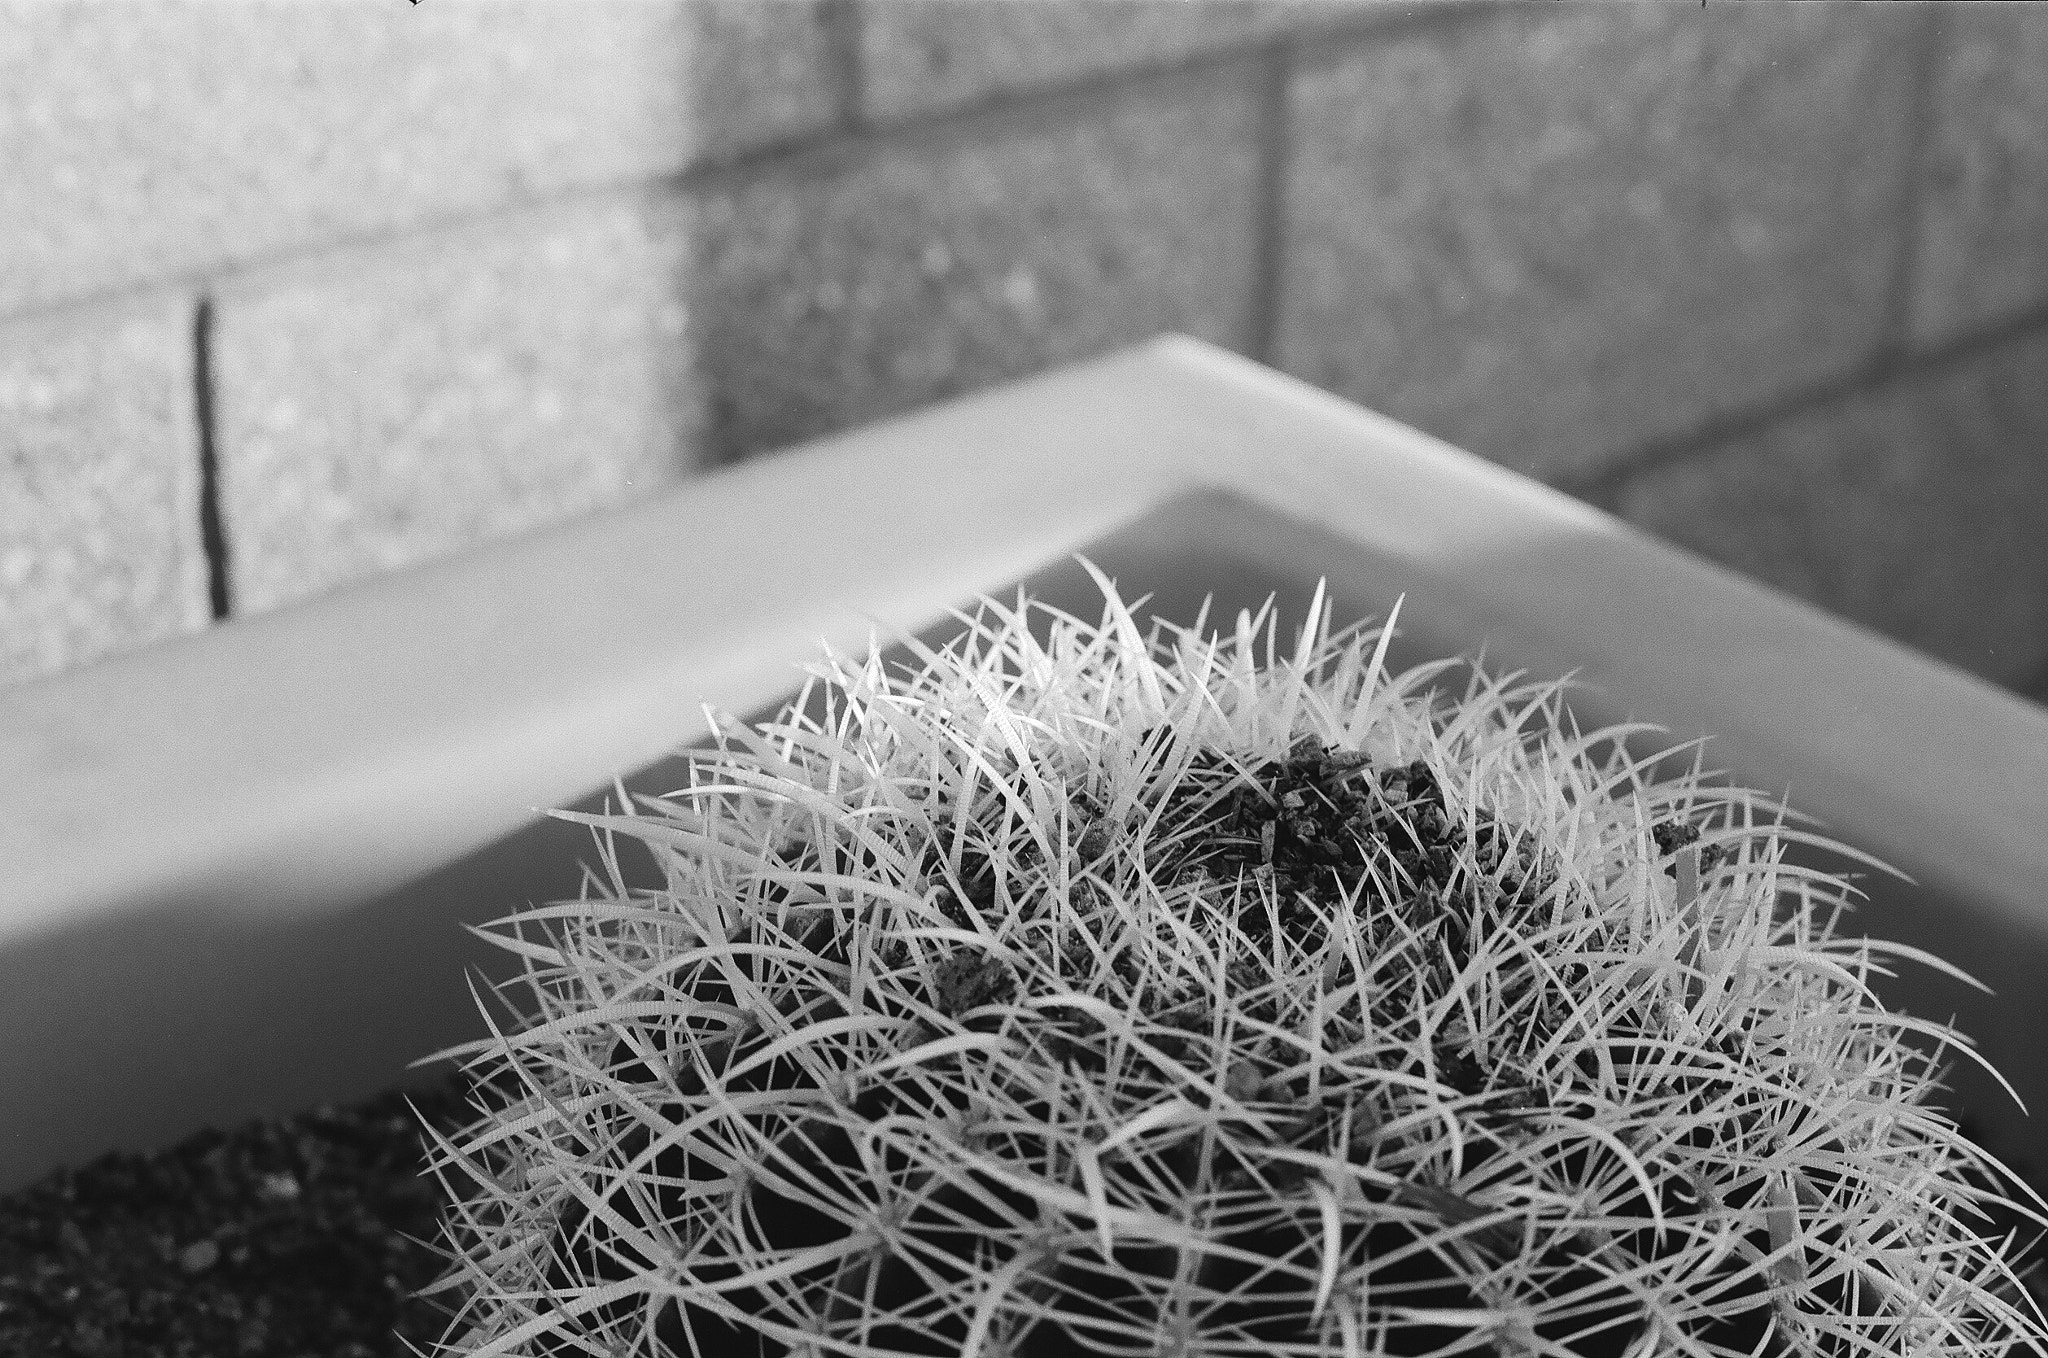 Photograph Cactus. by Jordan Mulcahey on 500px